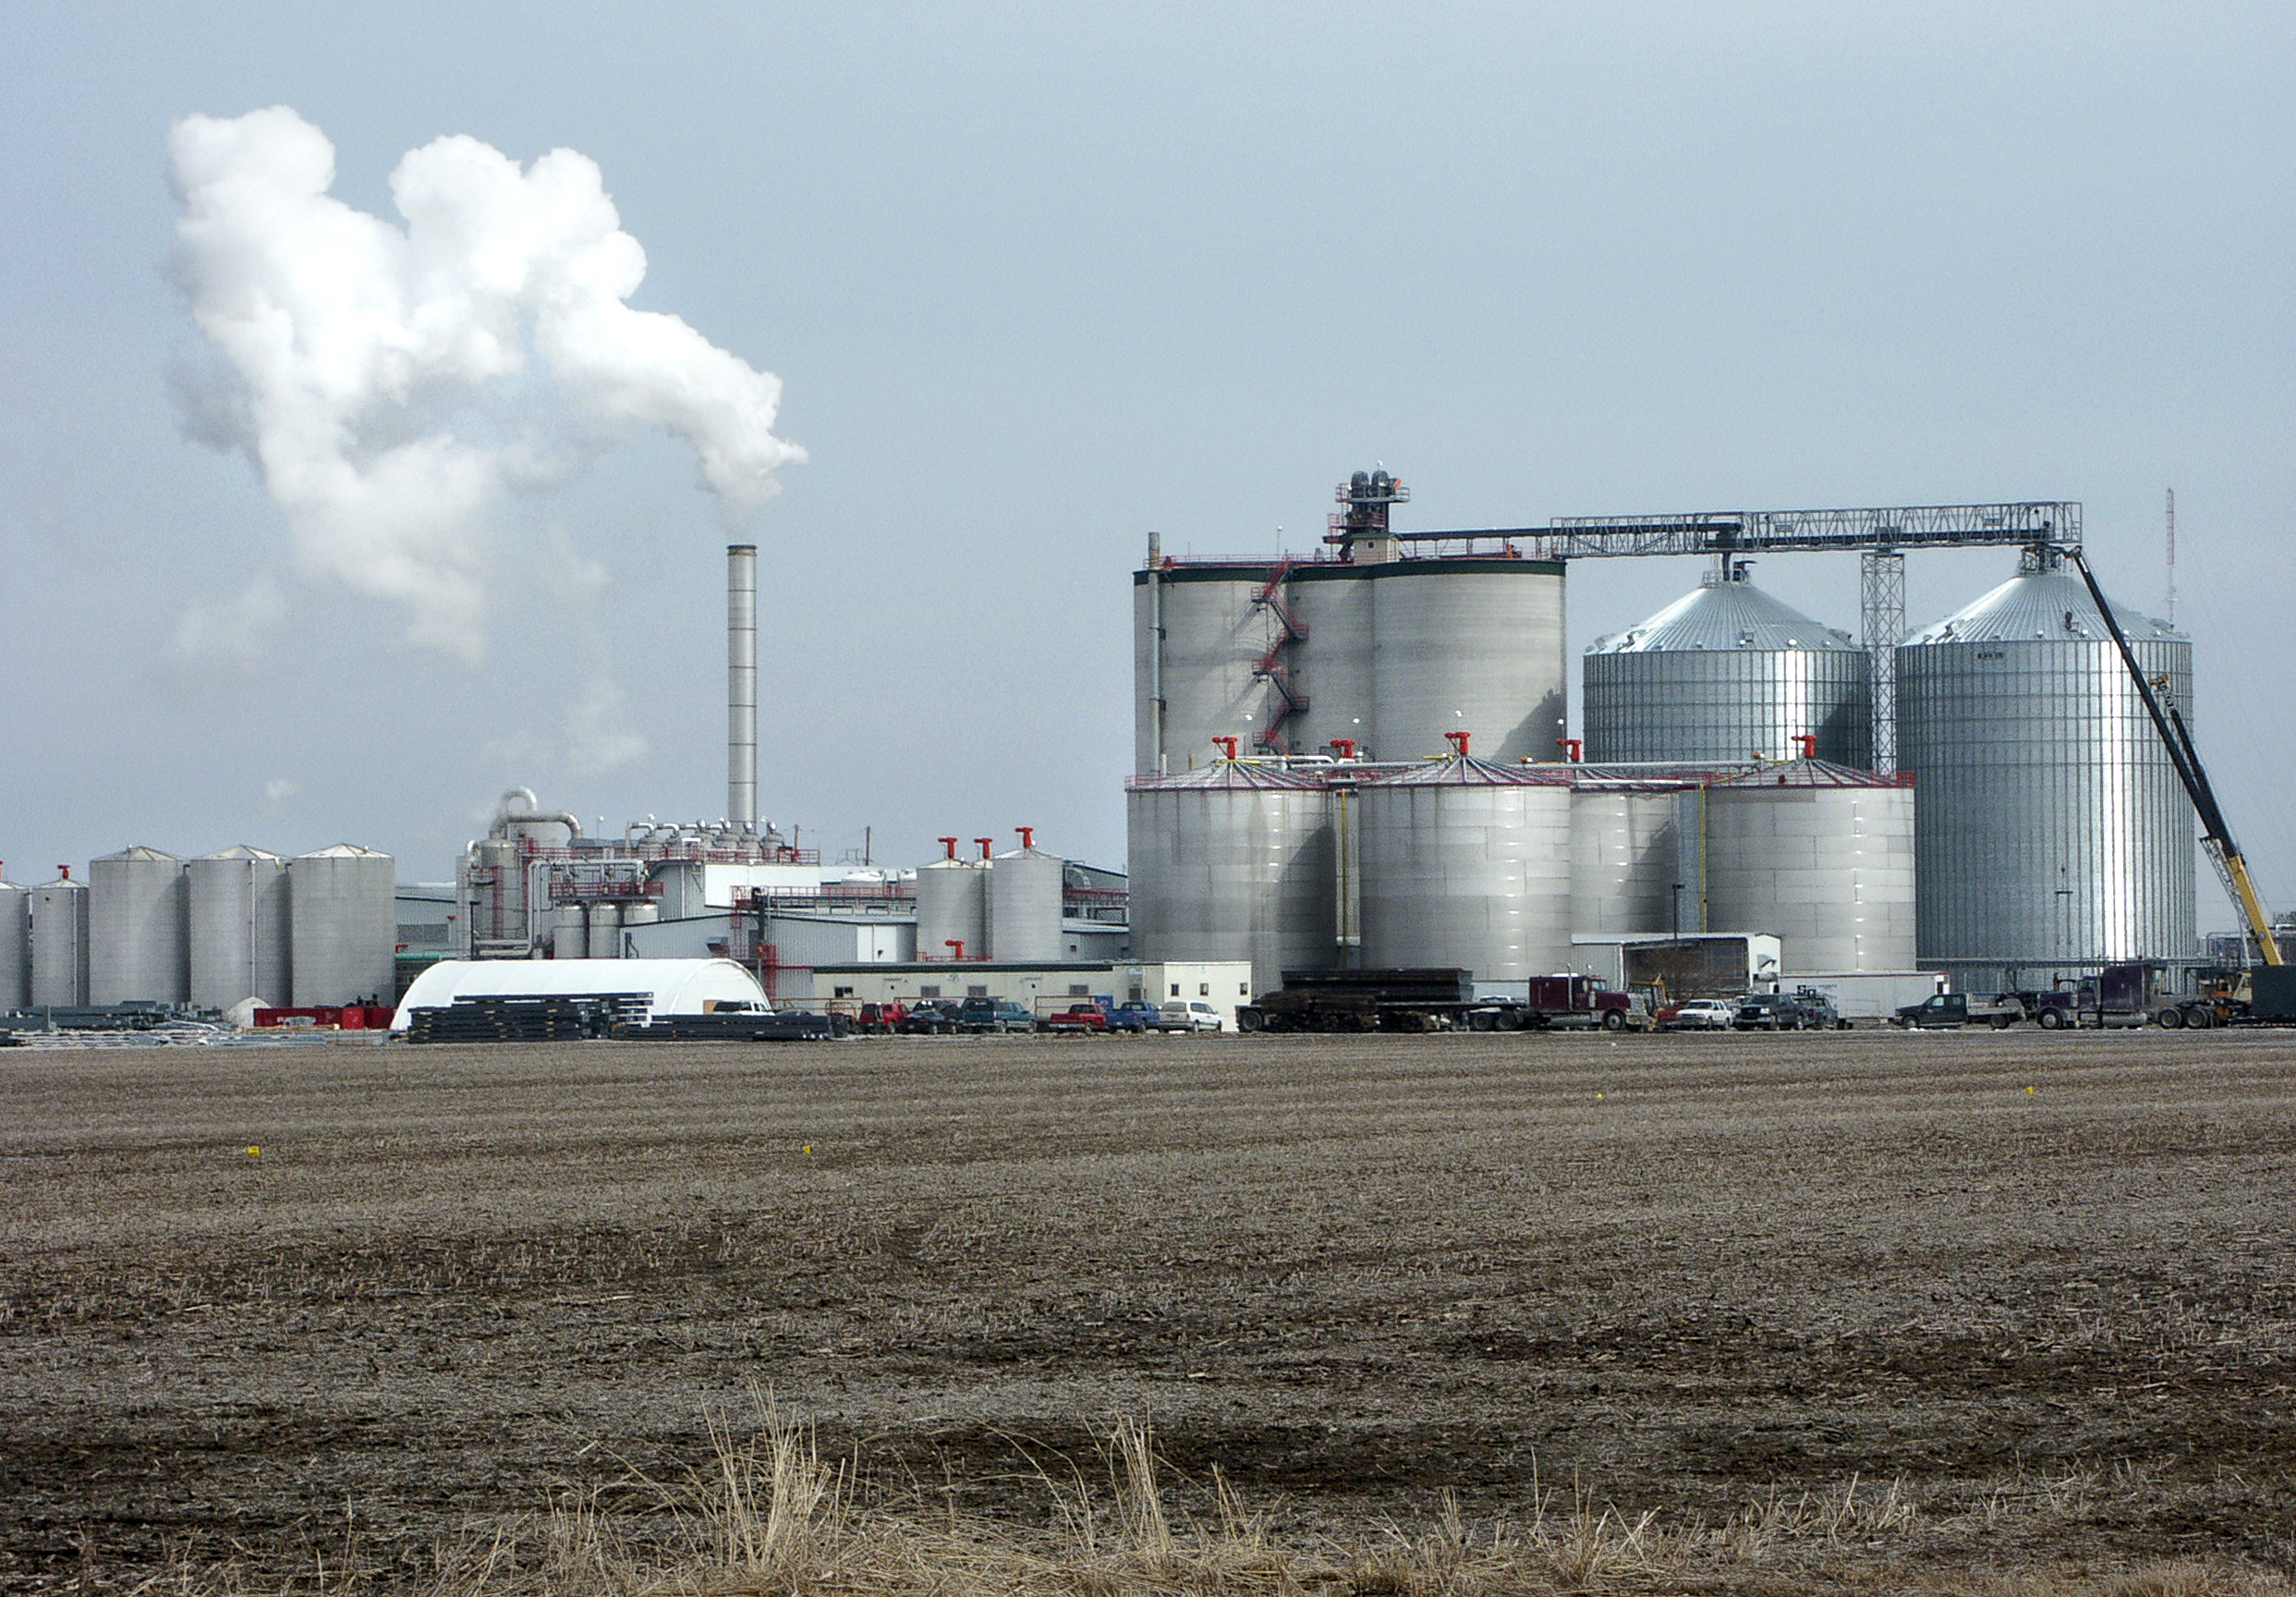 http://upload.wikimedia.org/wikipedia/commons/3/35/Ethanol_plant.jpg